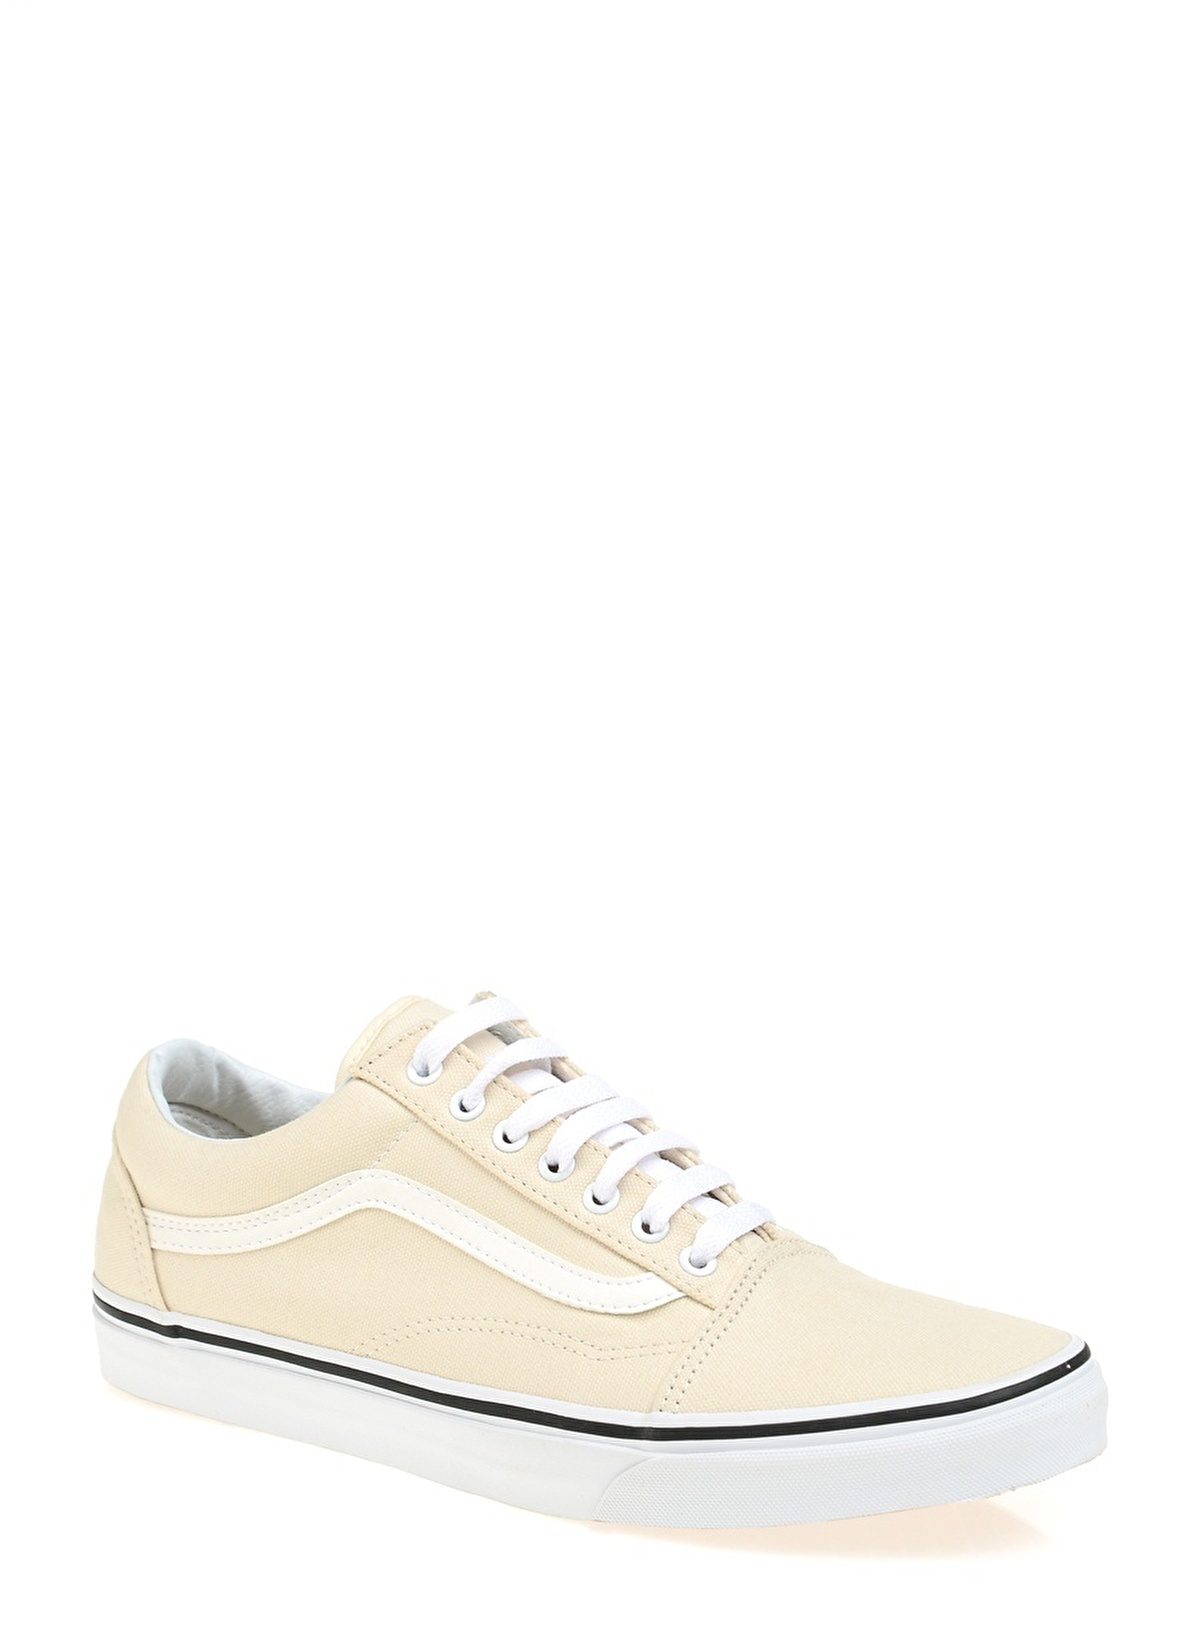 983bac5d8804d0 Vans Unisex Old Skool (Canvas) Classic White